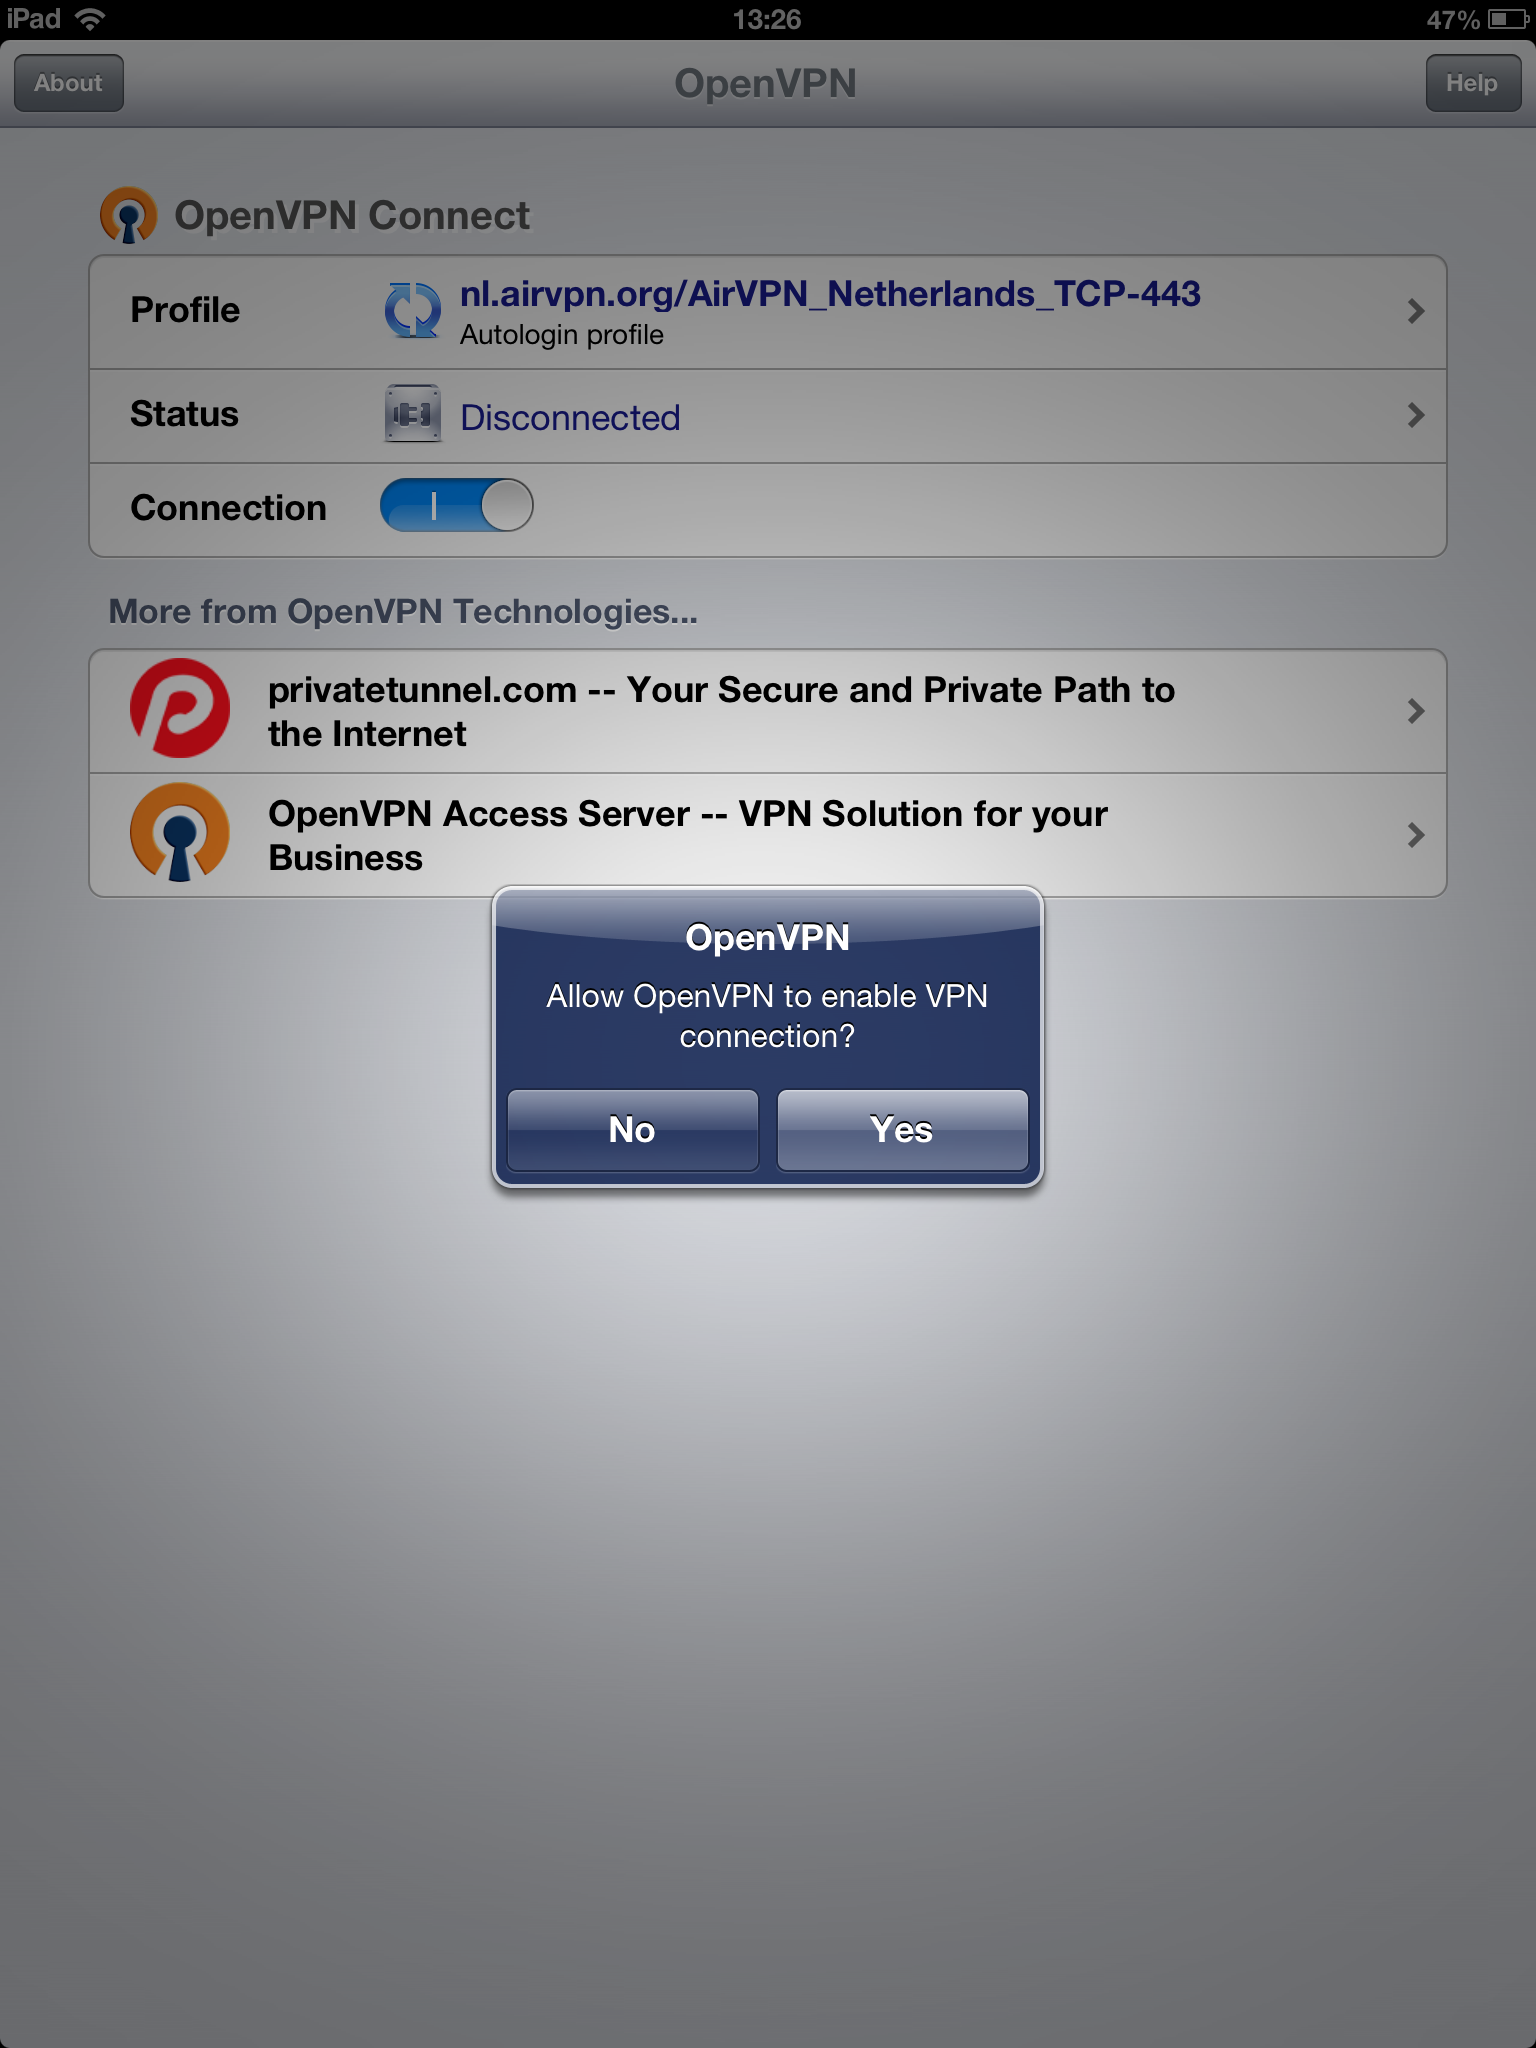 iOS (iPhone/iPad/iPod) - AirVPN